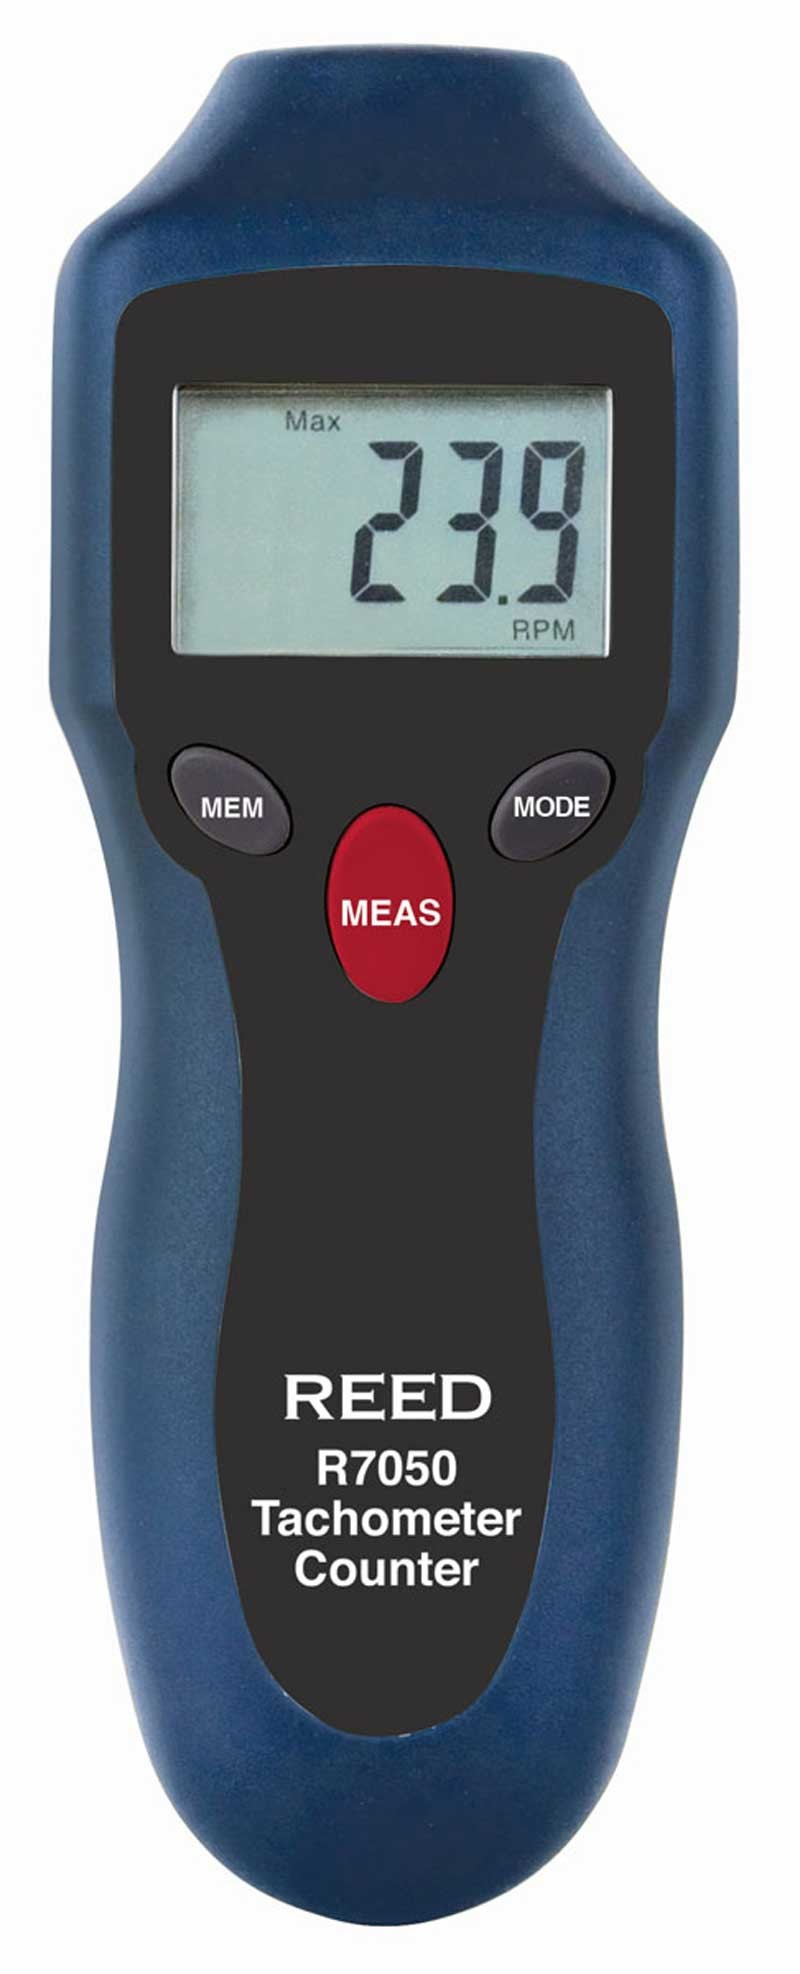 REED R7050 Compact Photo Tachometer and Counter-